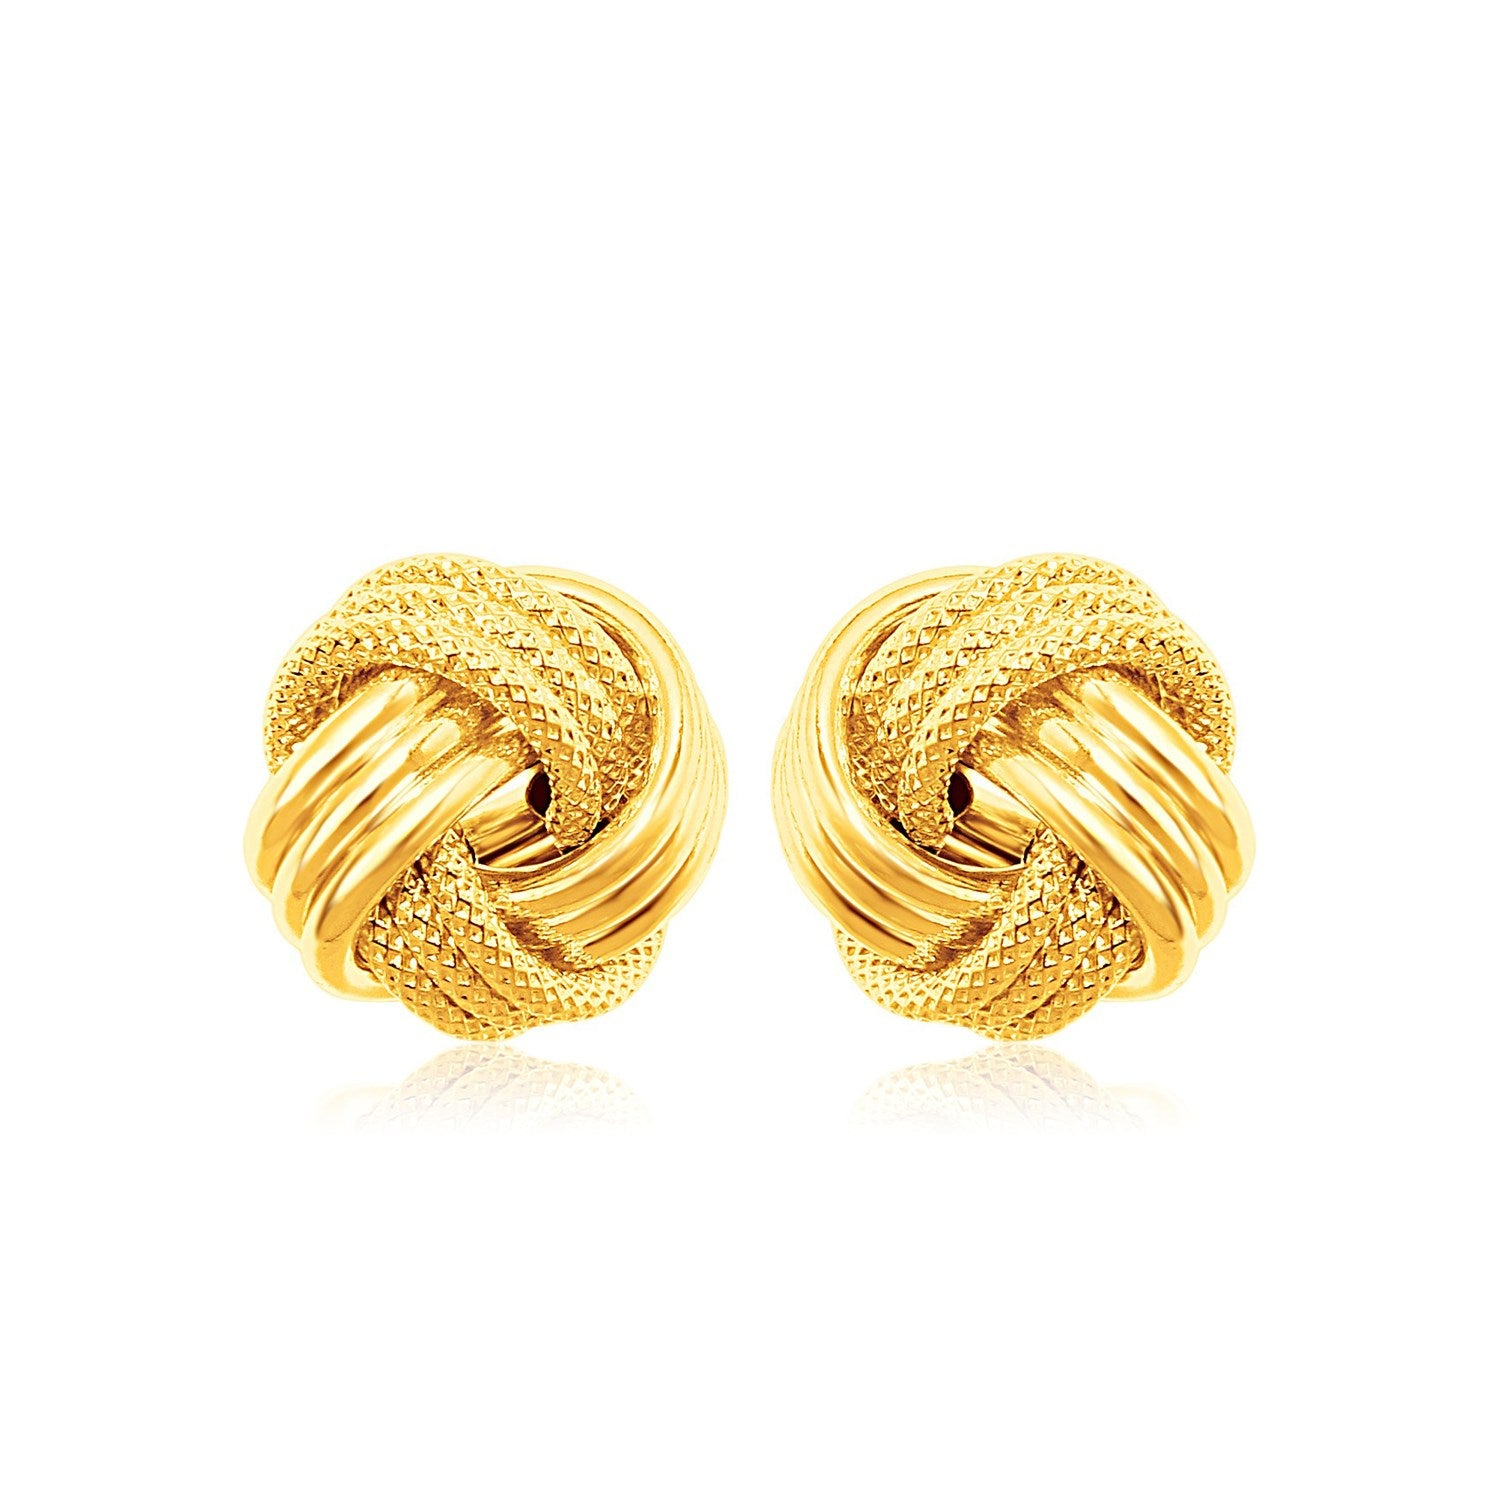 3a66eb878 14k Yellow Gold Love Knot with Ridge Texture Earrings - Unity BAMN